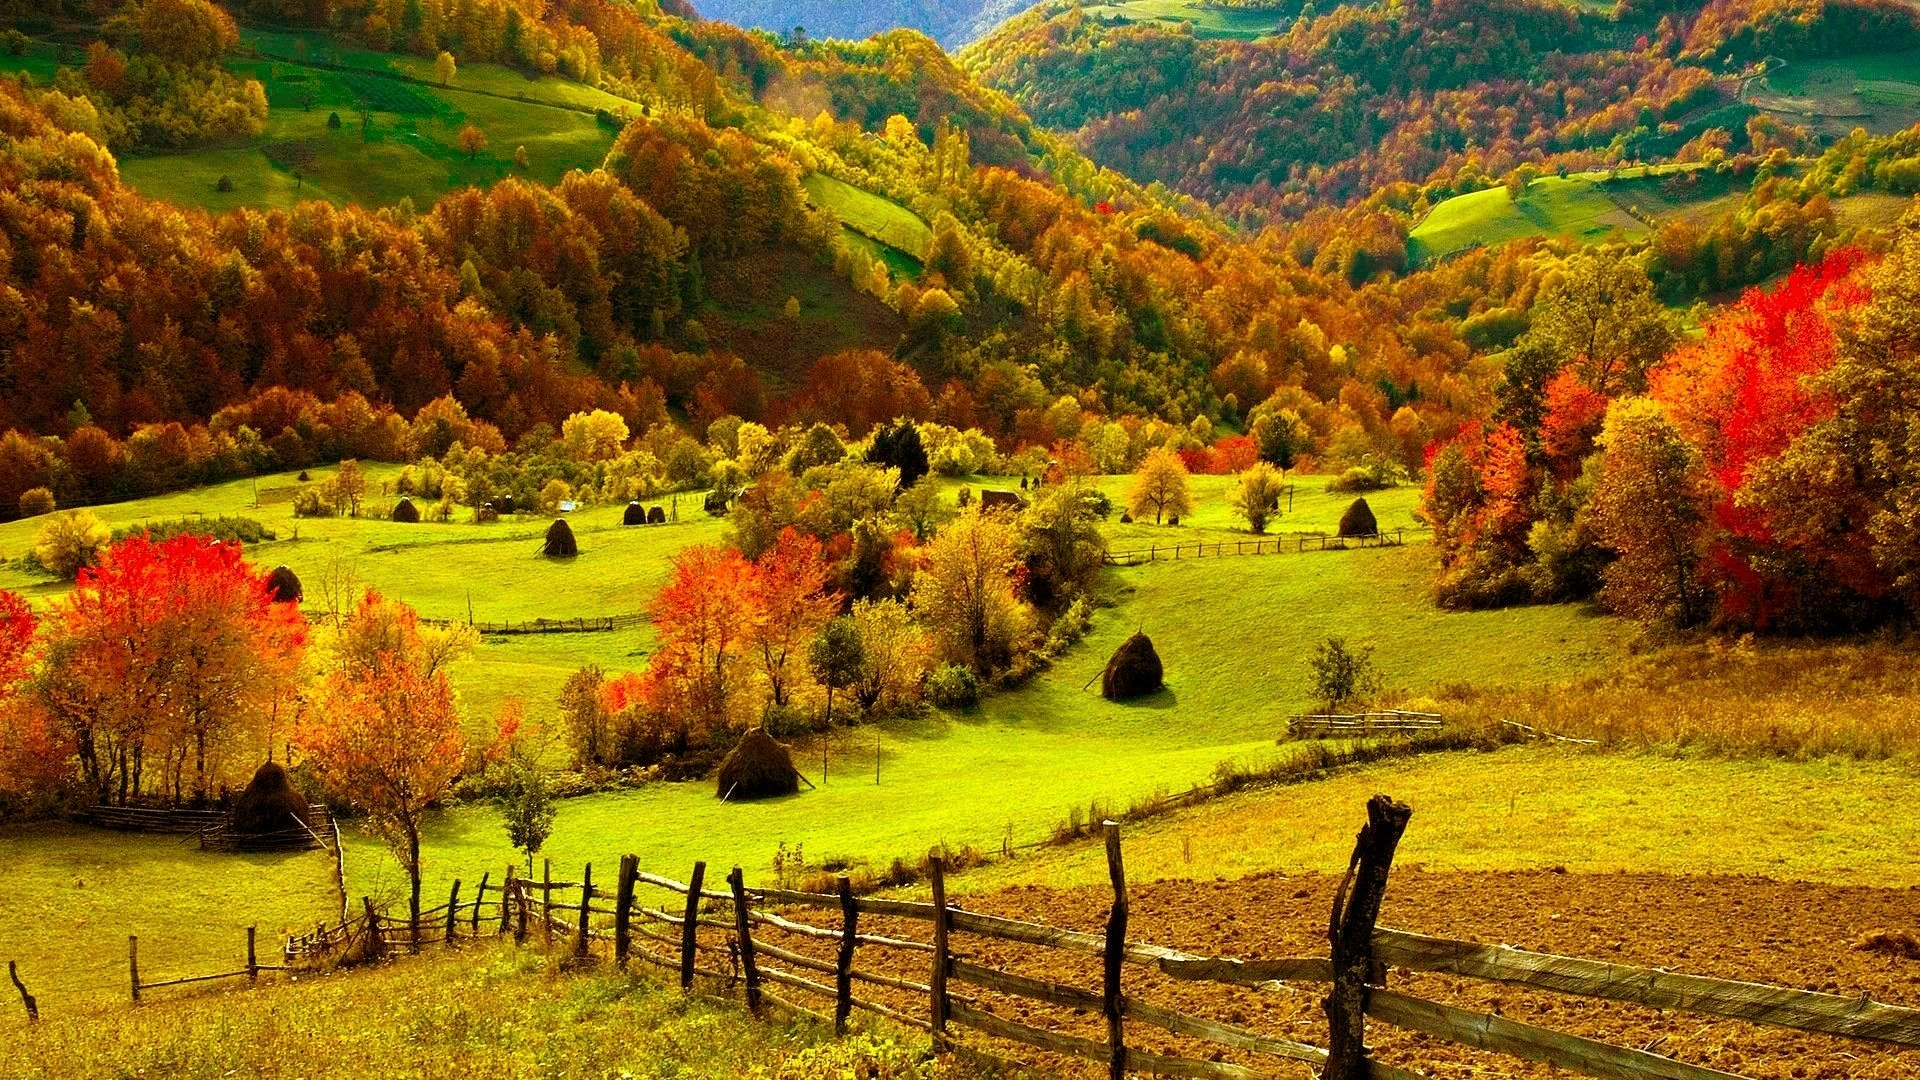 fall-scenery-wallpaper-hd | wallpaper.wiki